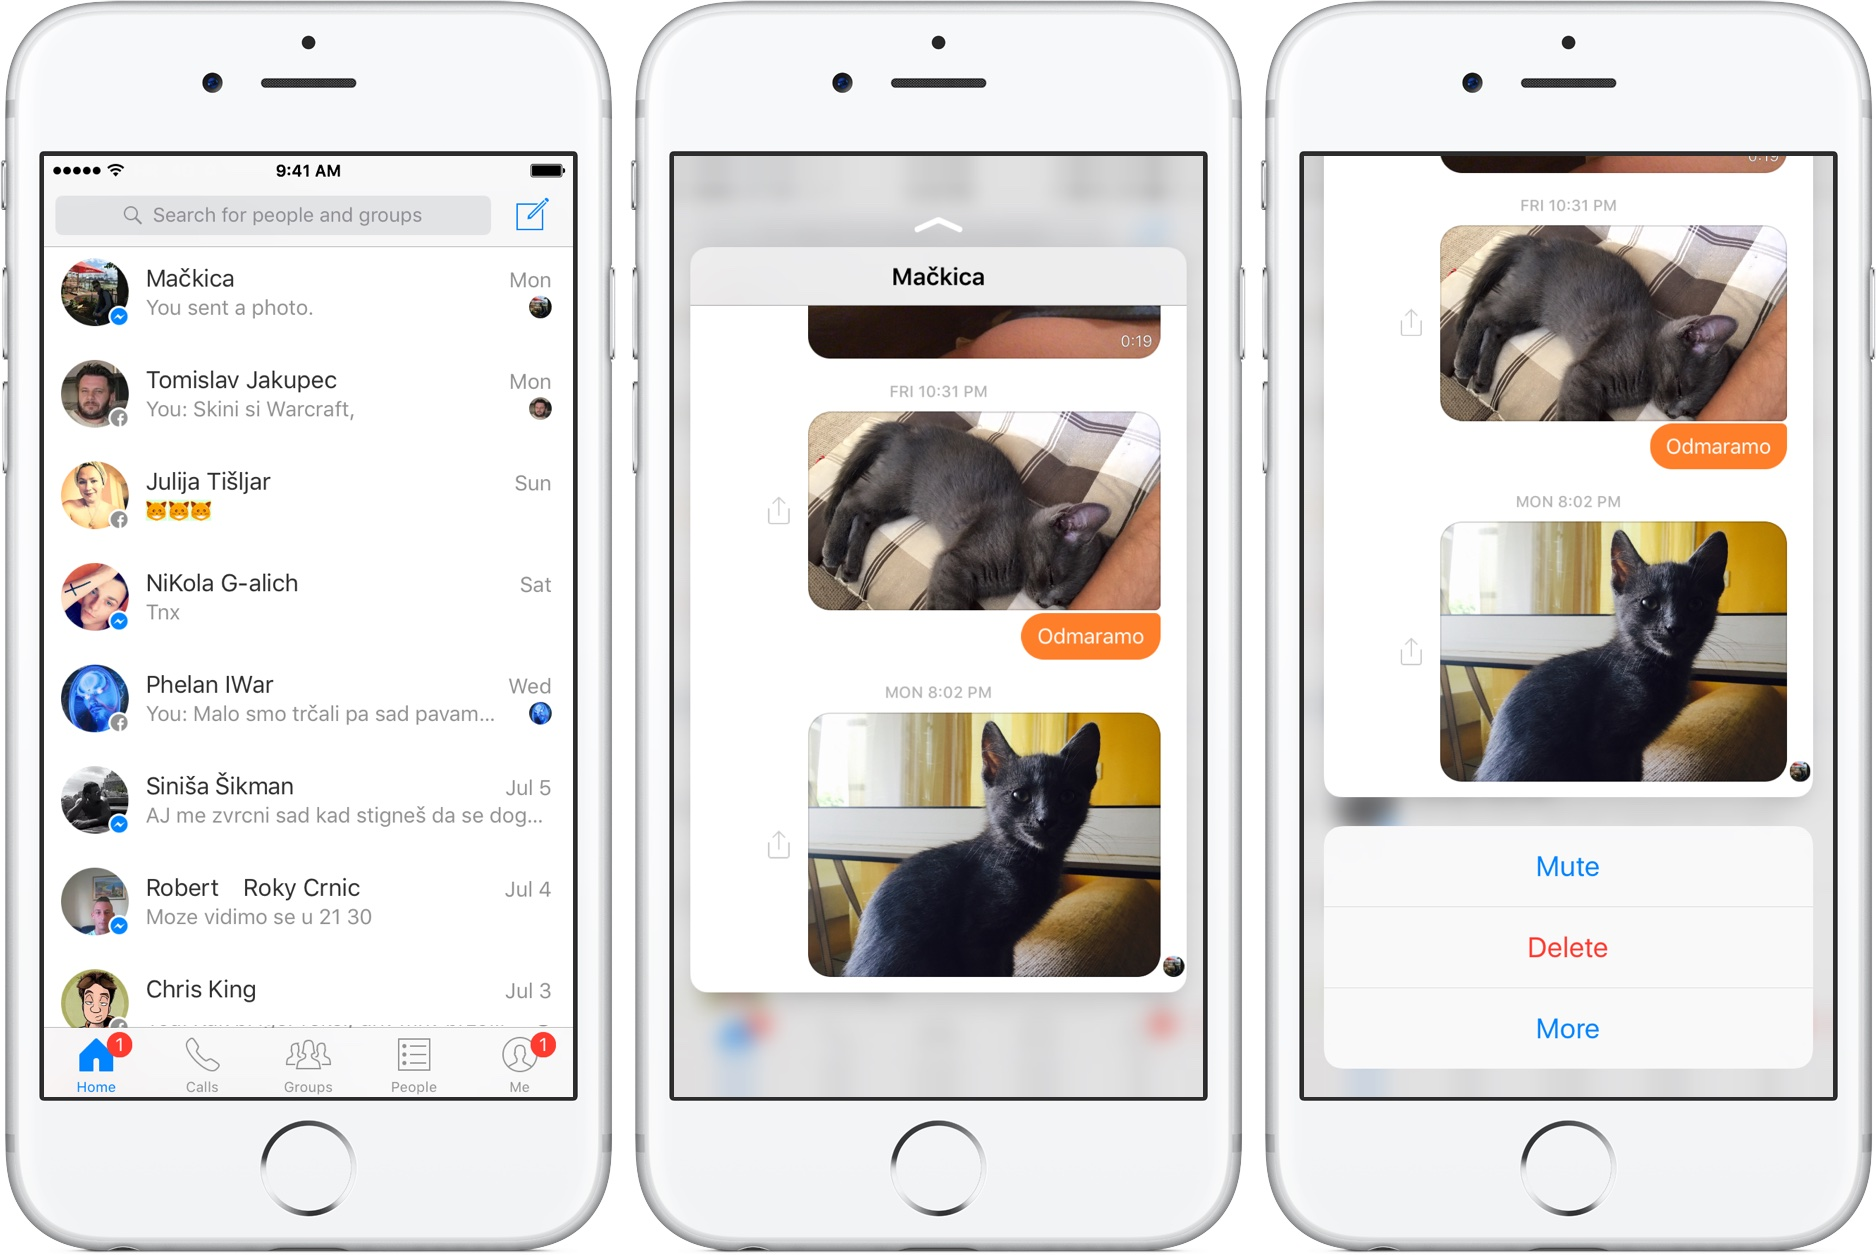 FAcebook Messenger 3D Touch silver iPhone screenshot 002